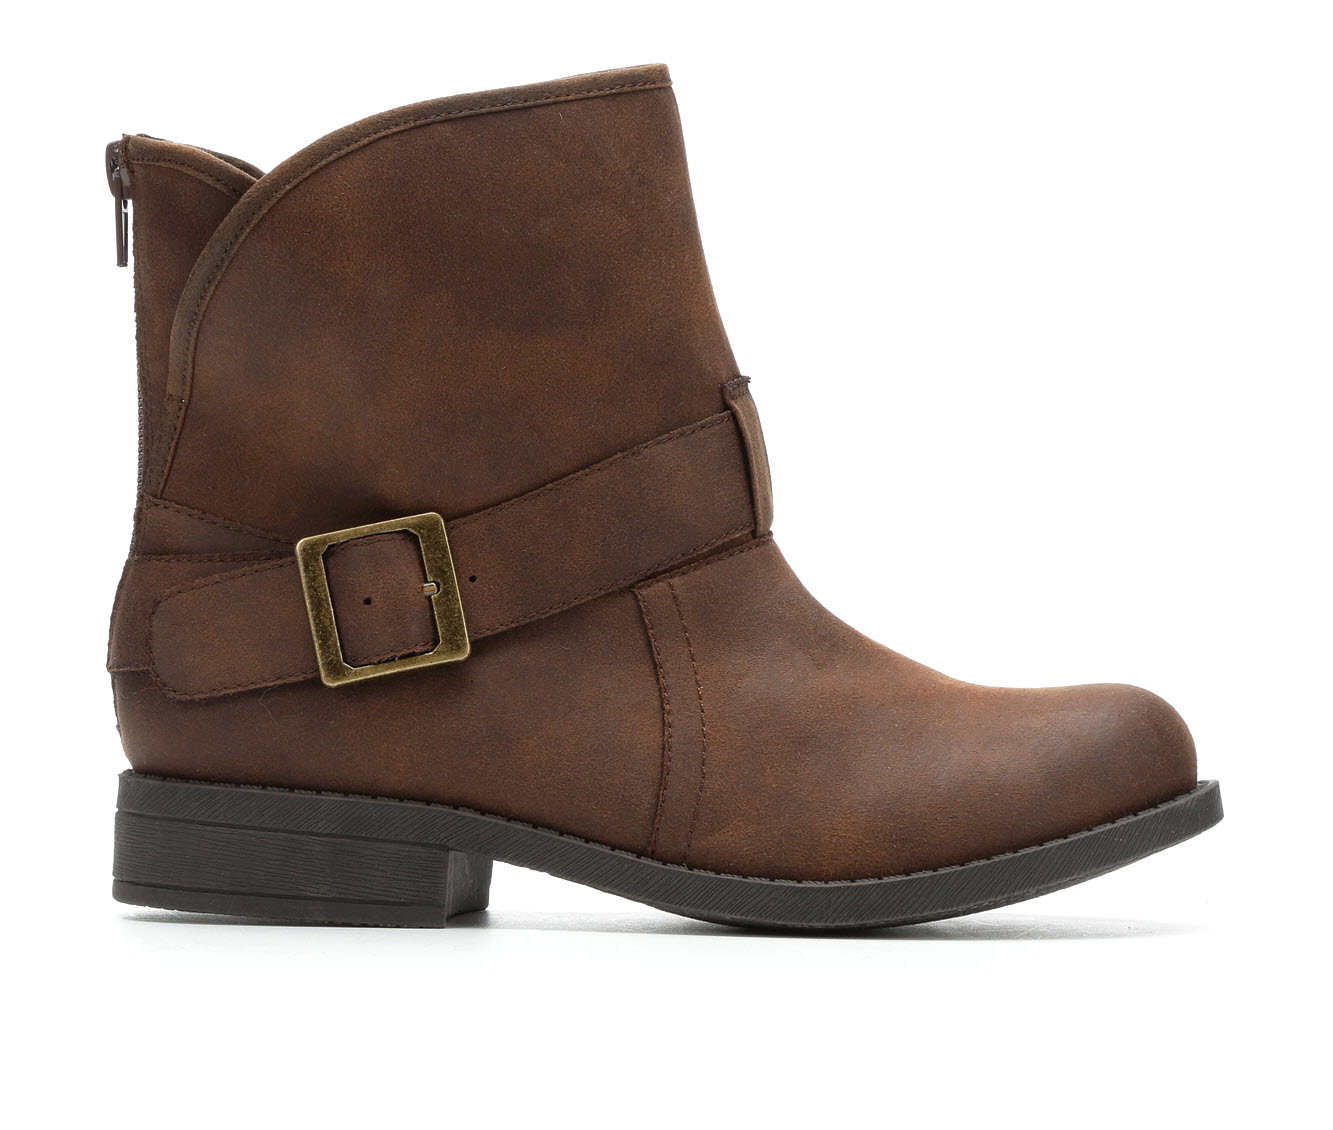 No Parking Wilna Women's Boots (Brown - Faux Leather)